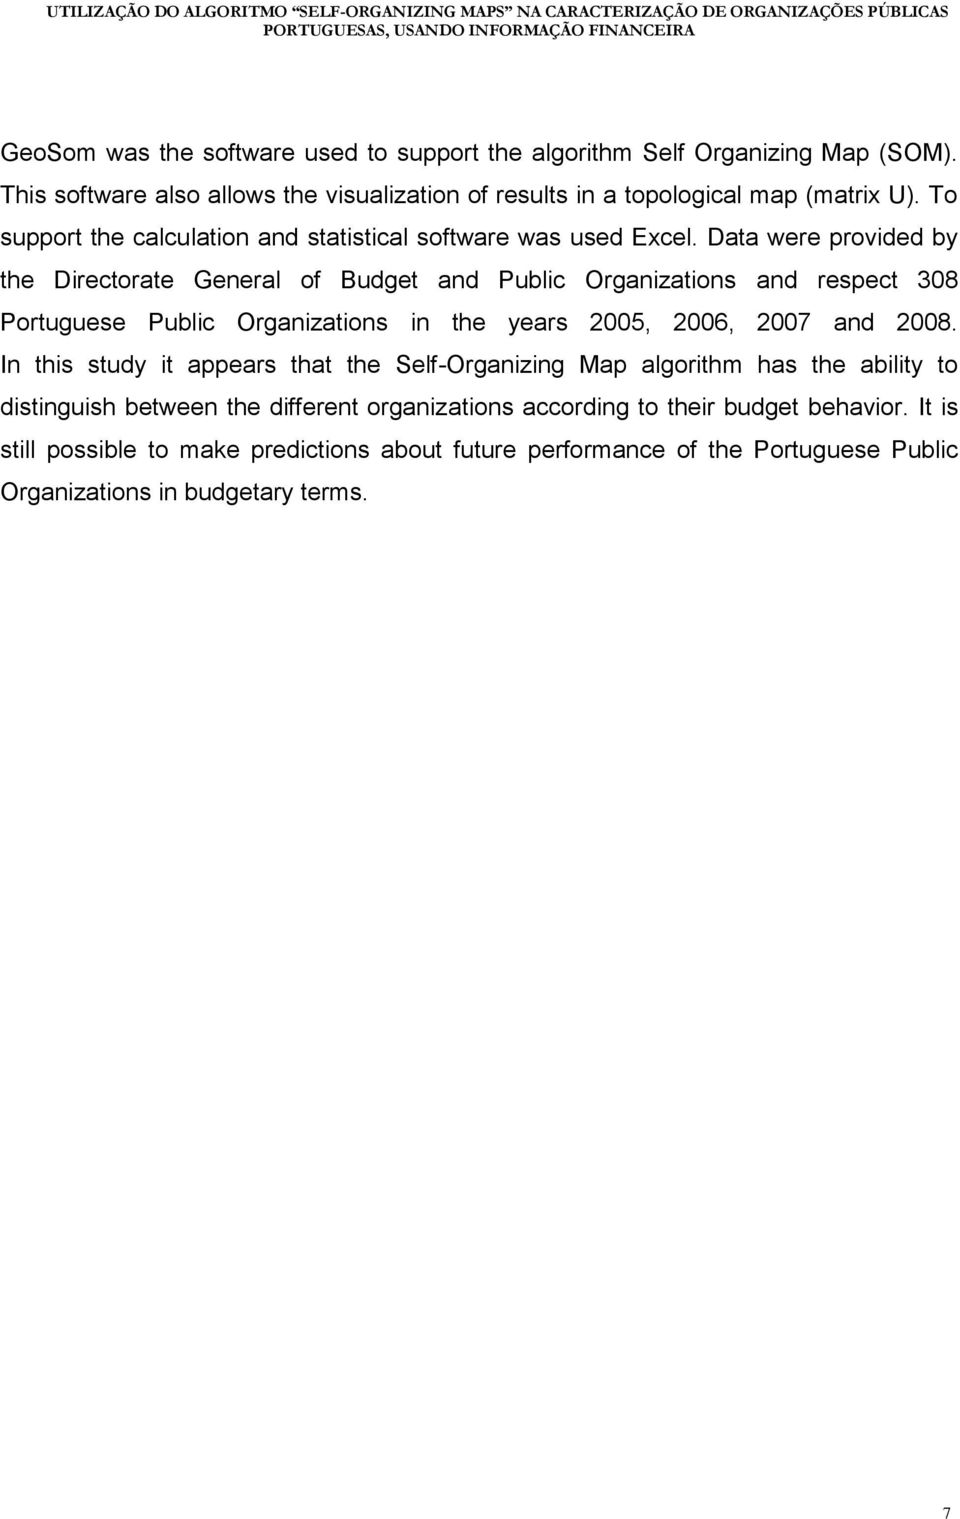 Data were provided by the Directorate General of Budget and Public Organizations and respect 308 Portuguese Public Organizations in the years 2005, 2006, 2007 and 2008.